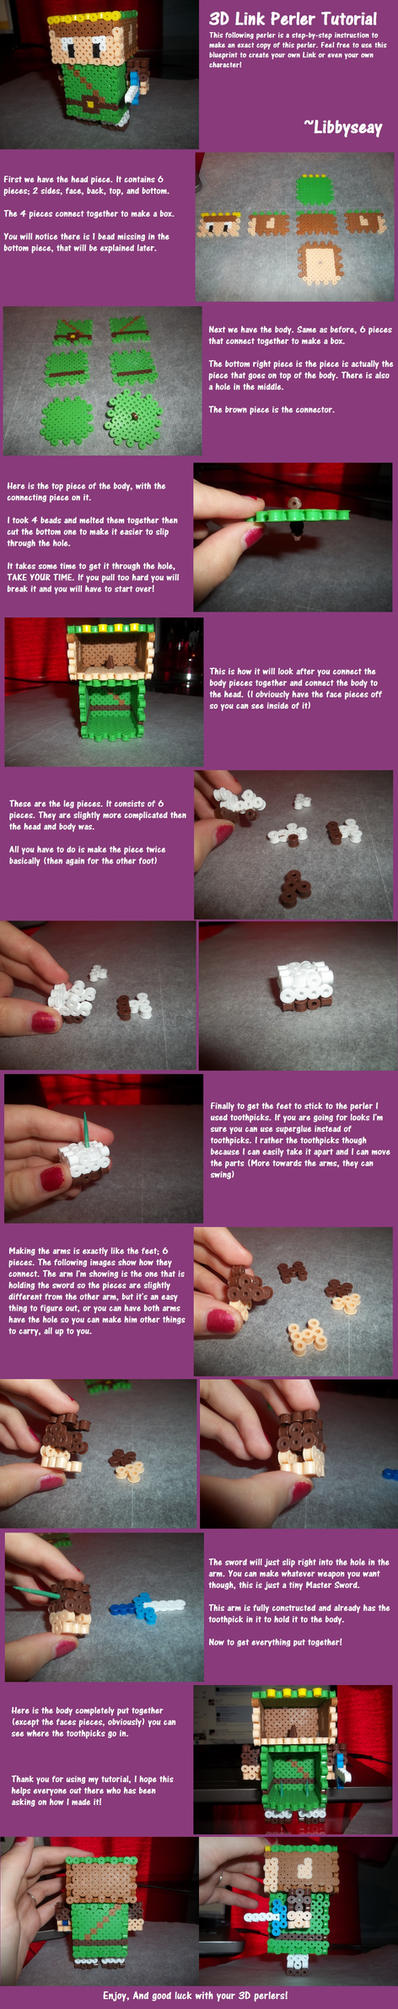 3D Link Perler Tutorial by Libbyseay